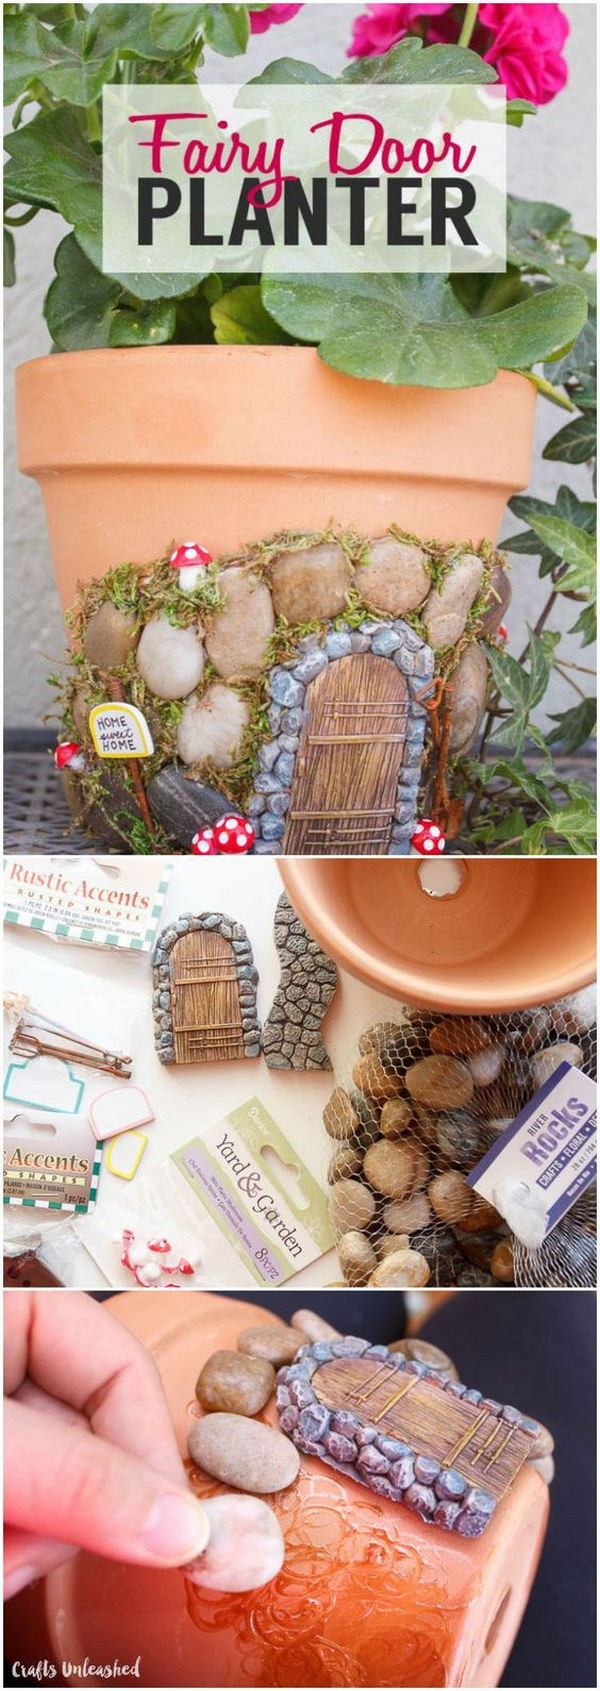 DIY Terracotta Fairy House Planter.